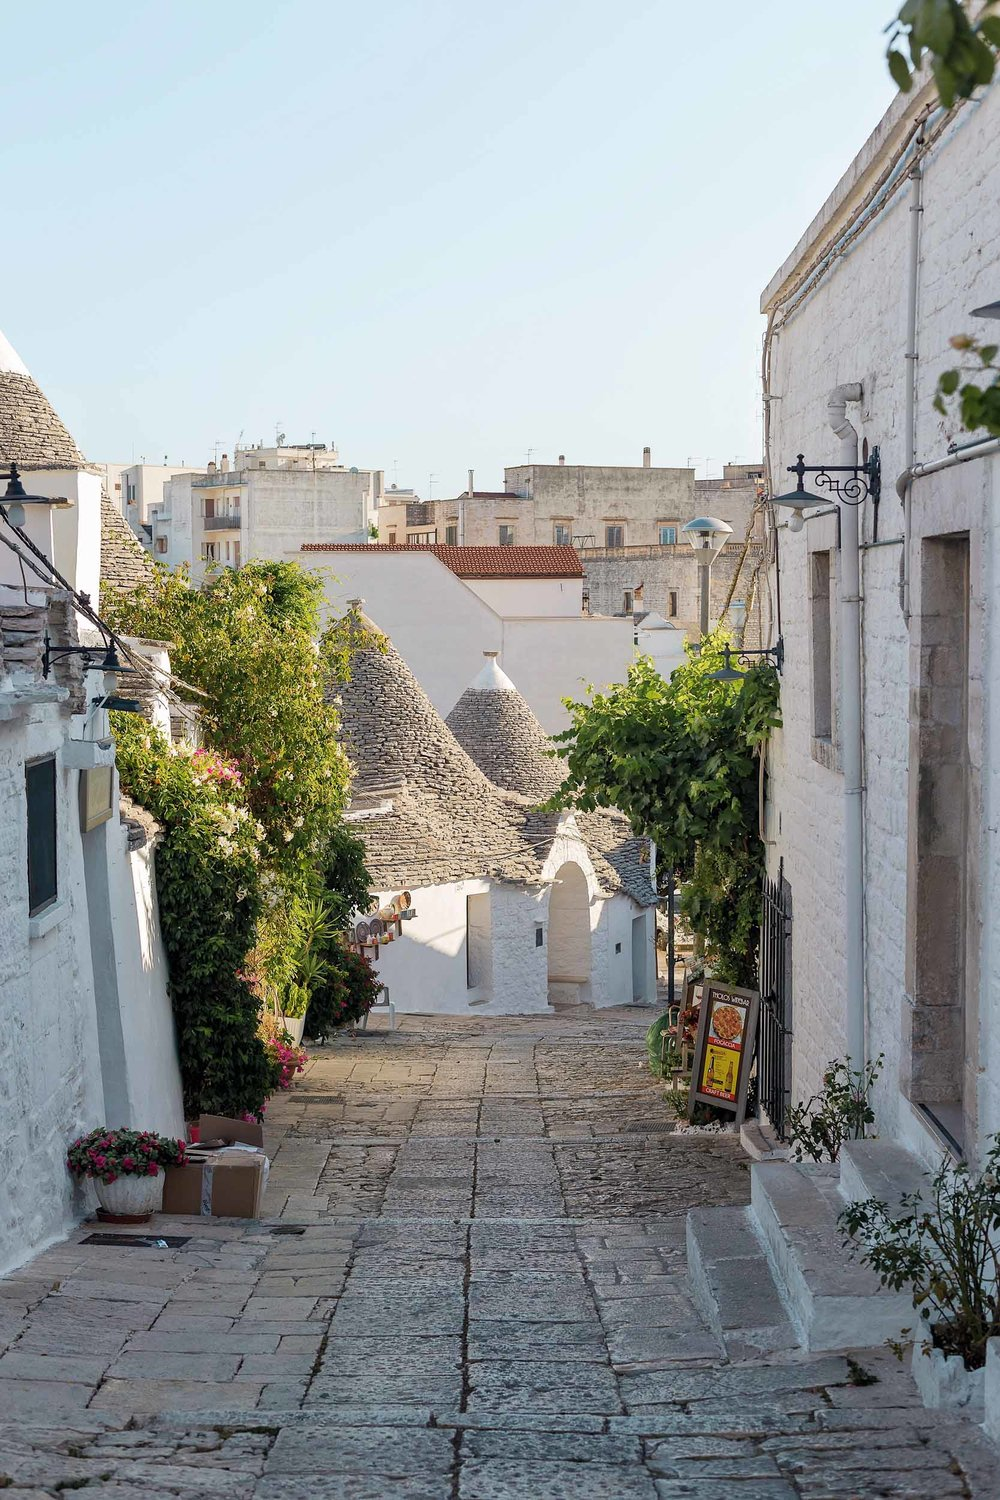 Hotels in Alberobello, Italy